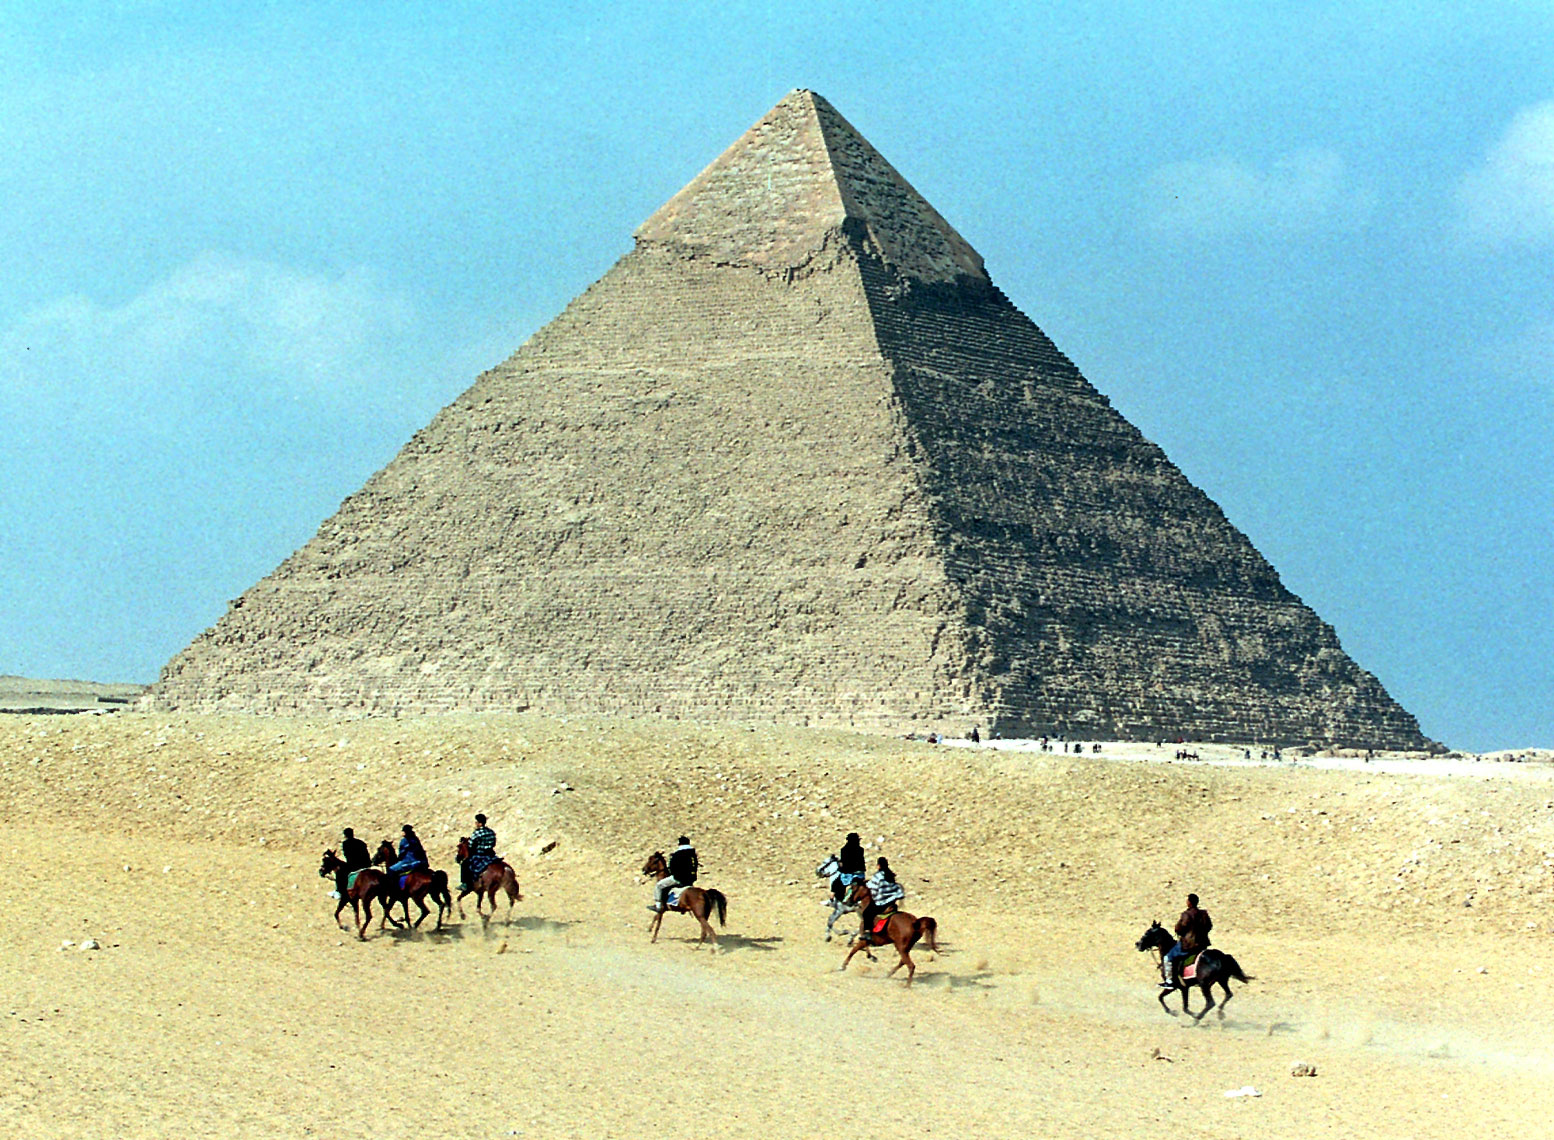 horse-riding-in-Giza